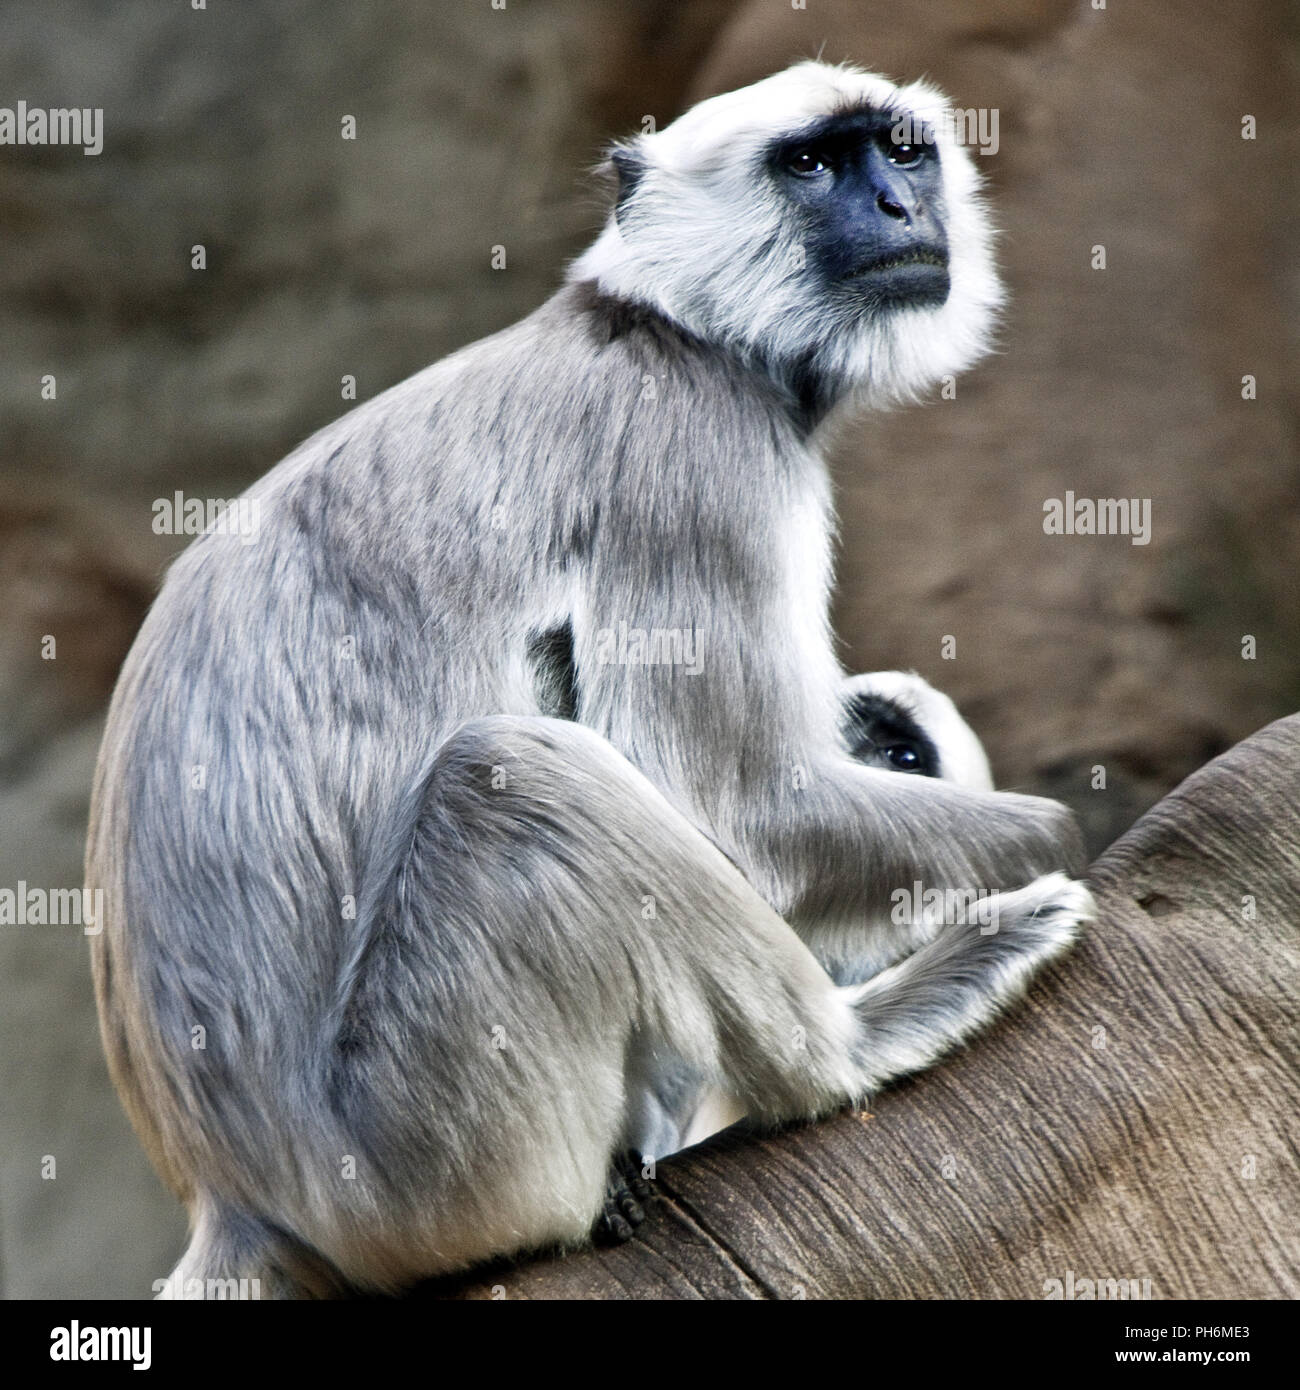 Hanuman langurs, Zoo Zoom, Gelsenkirchen, Germany - Stock Image